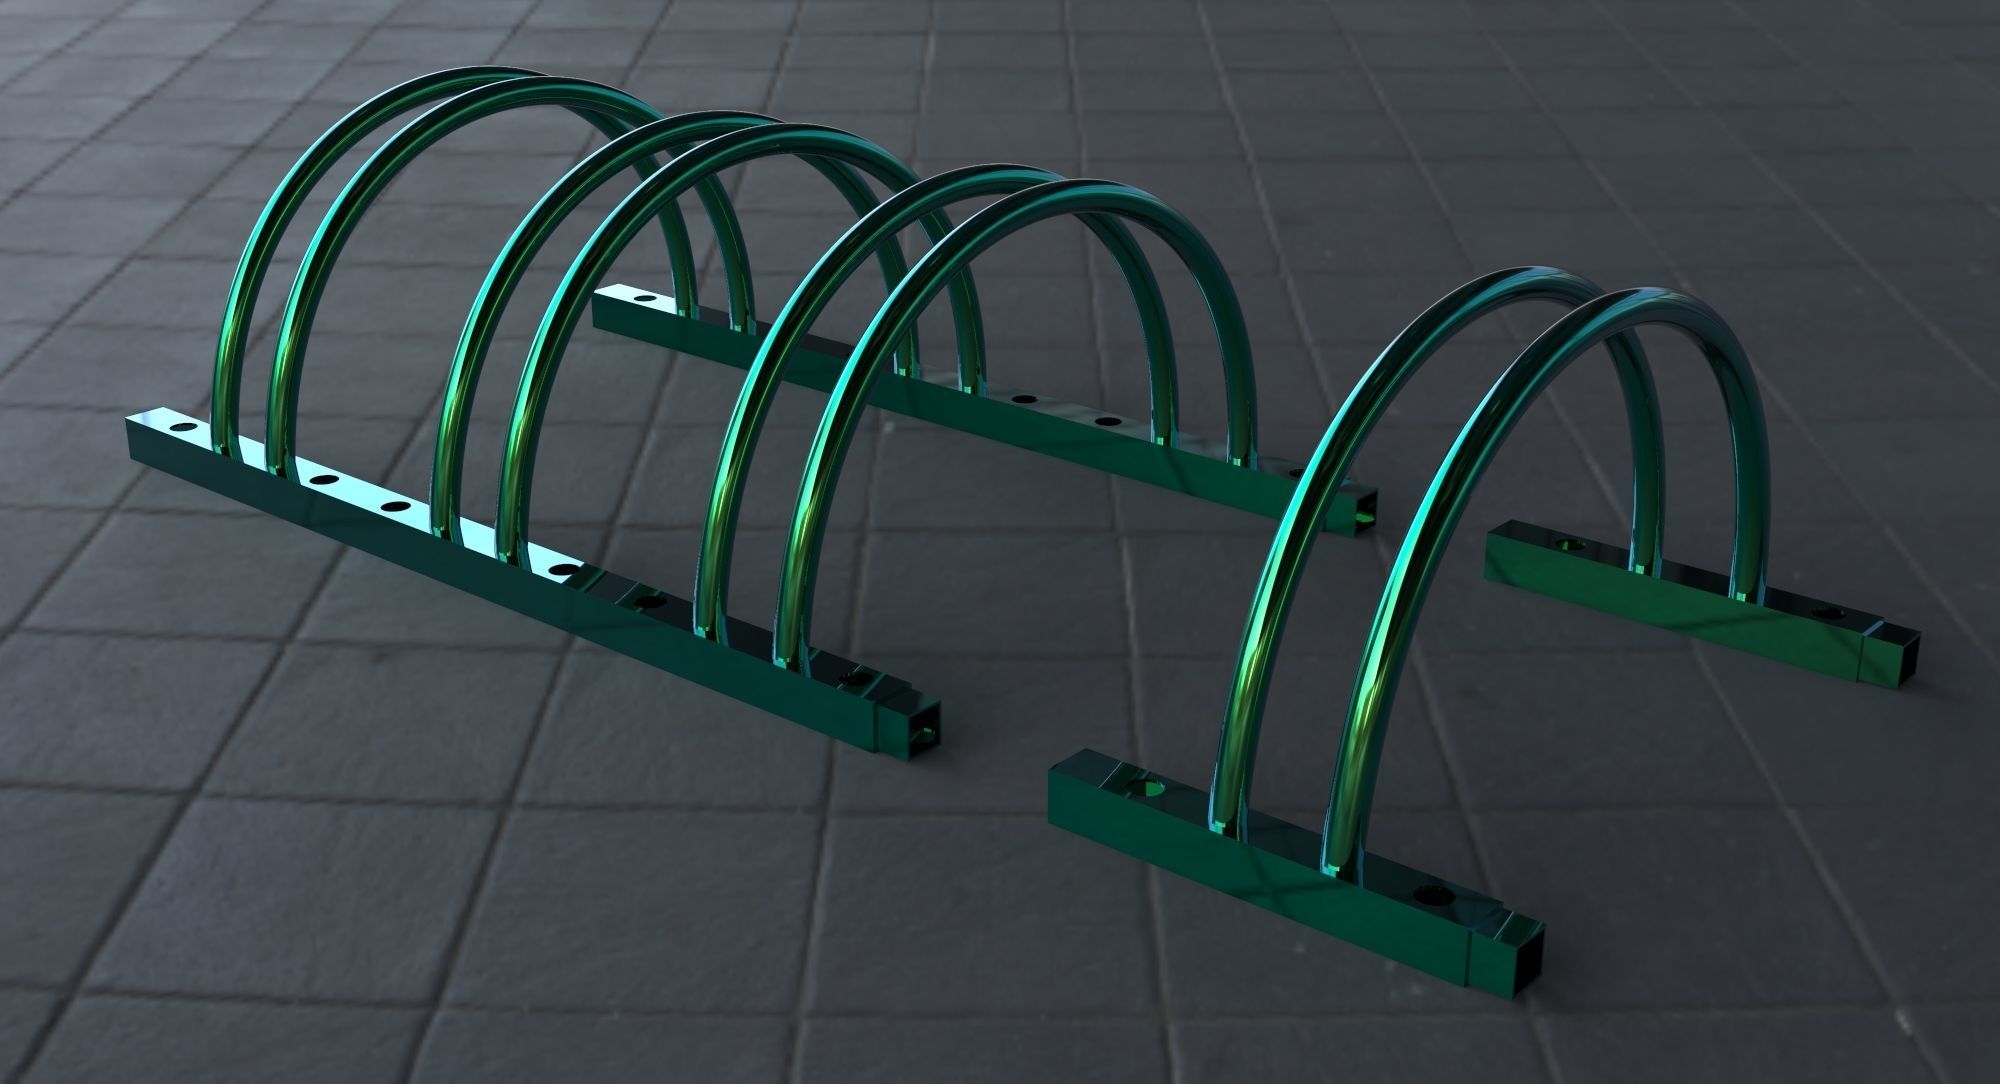 Sectional bicycle parking